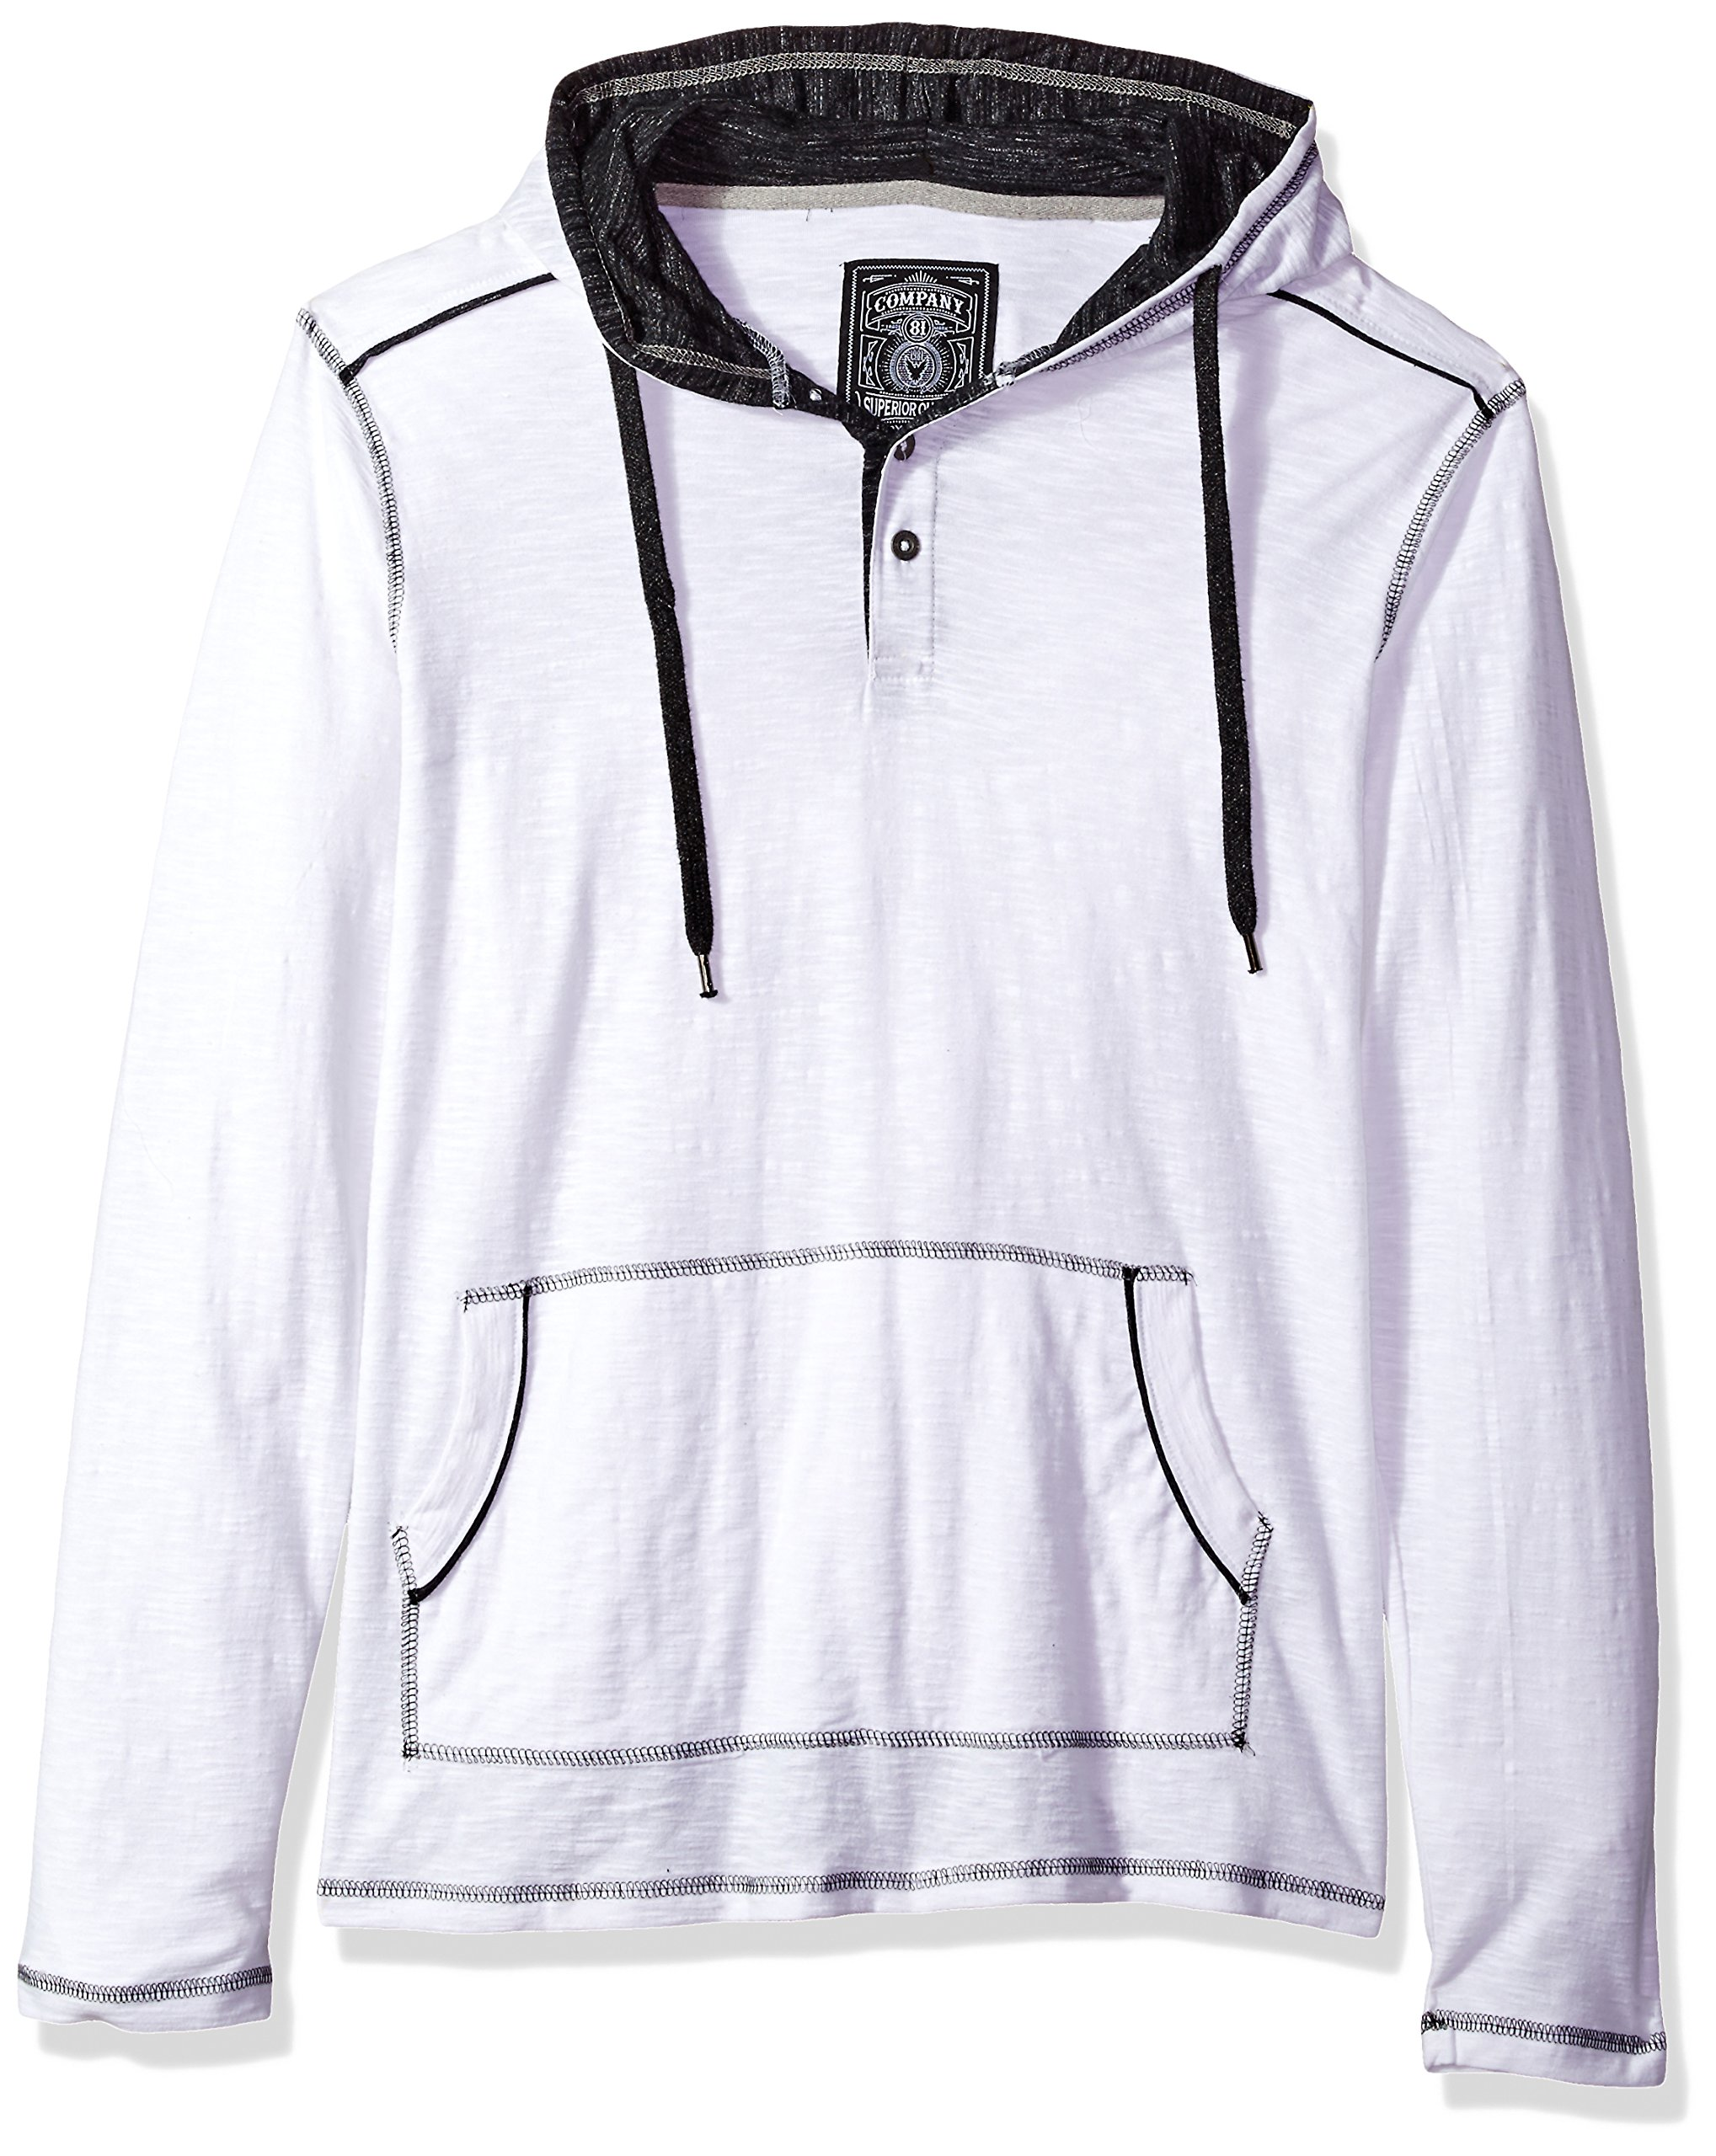 Company 81 Men's Stat Hoodie, White, Large